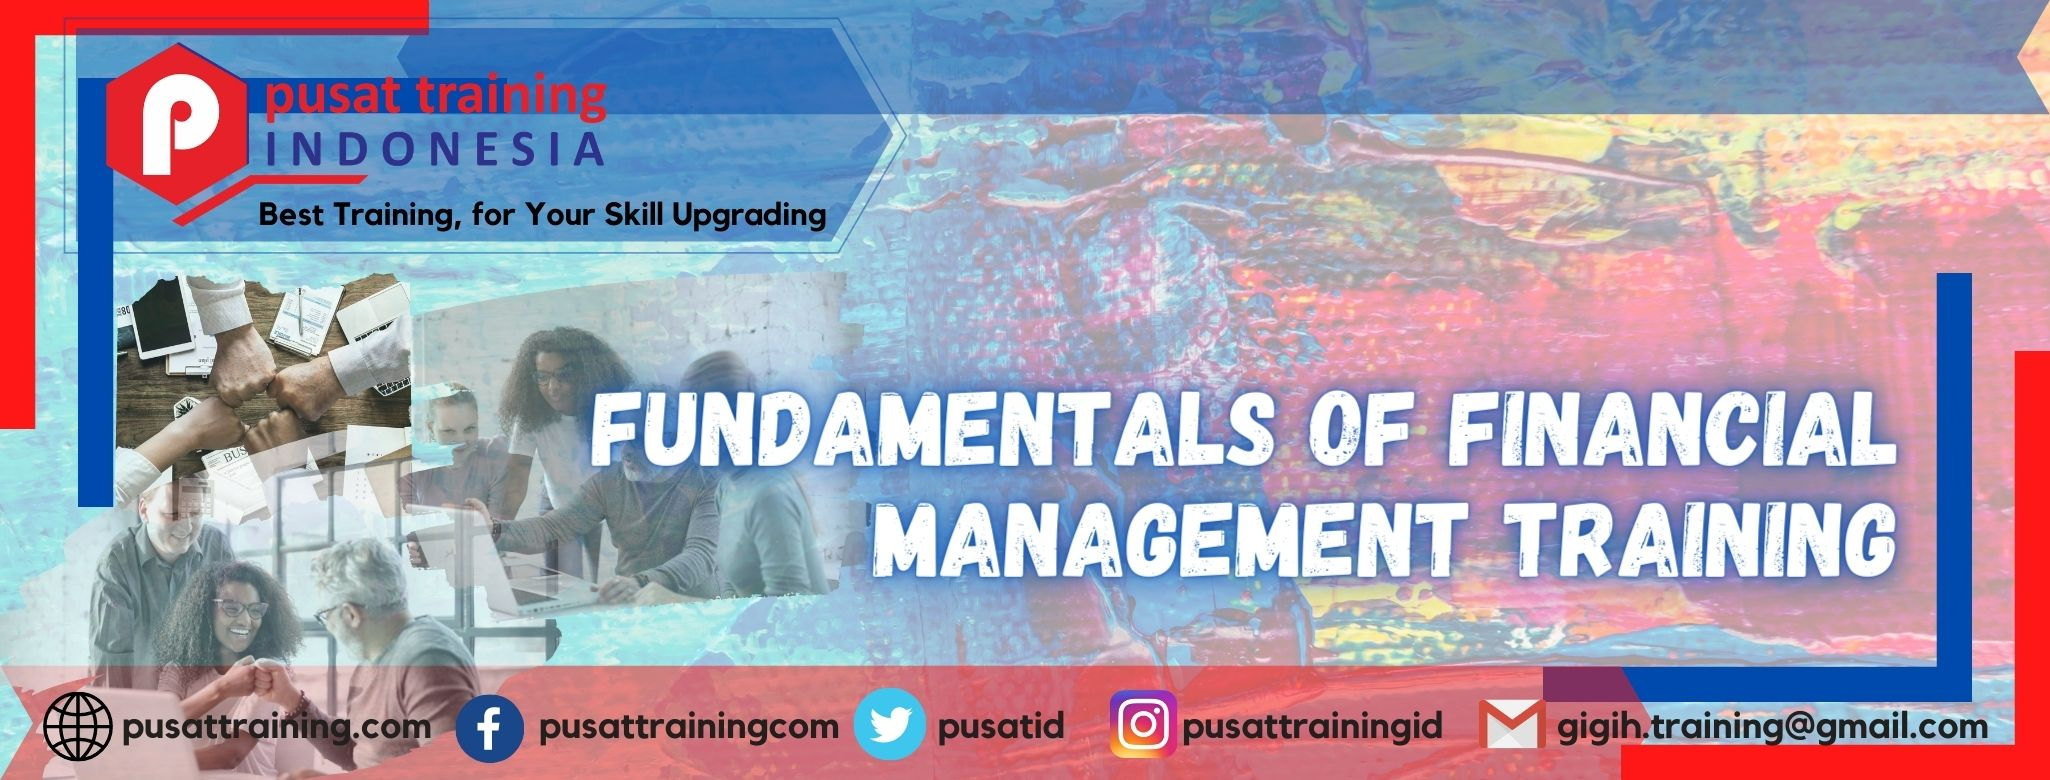 fundamentals-of-financial-mangement-training